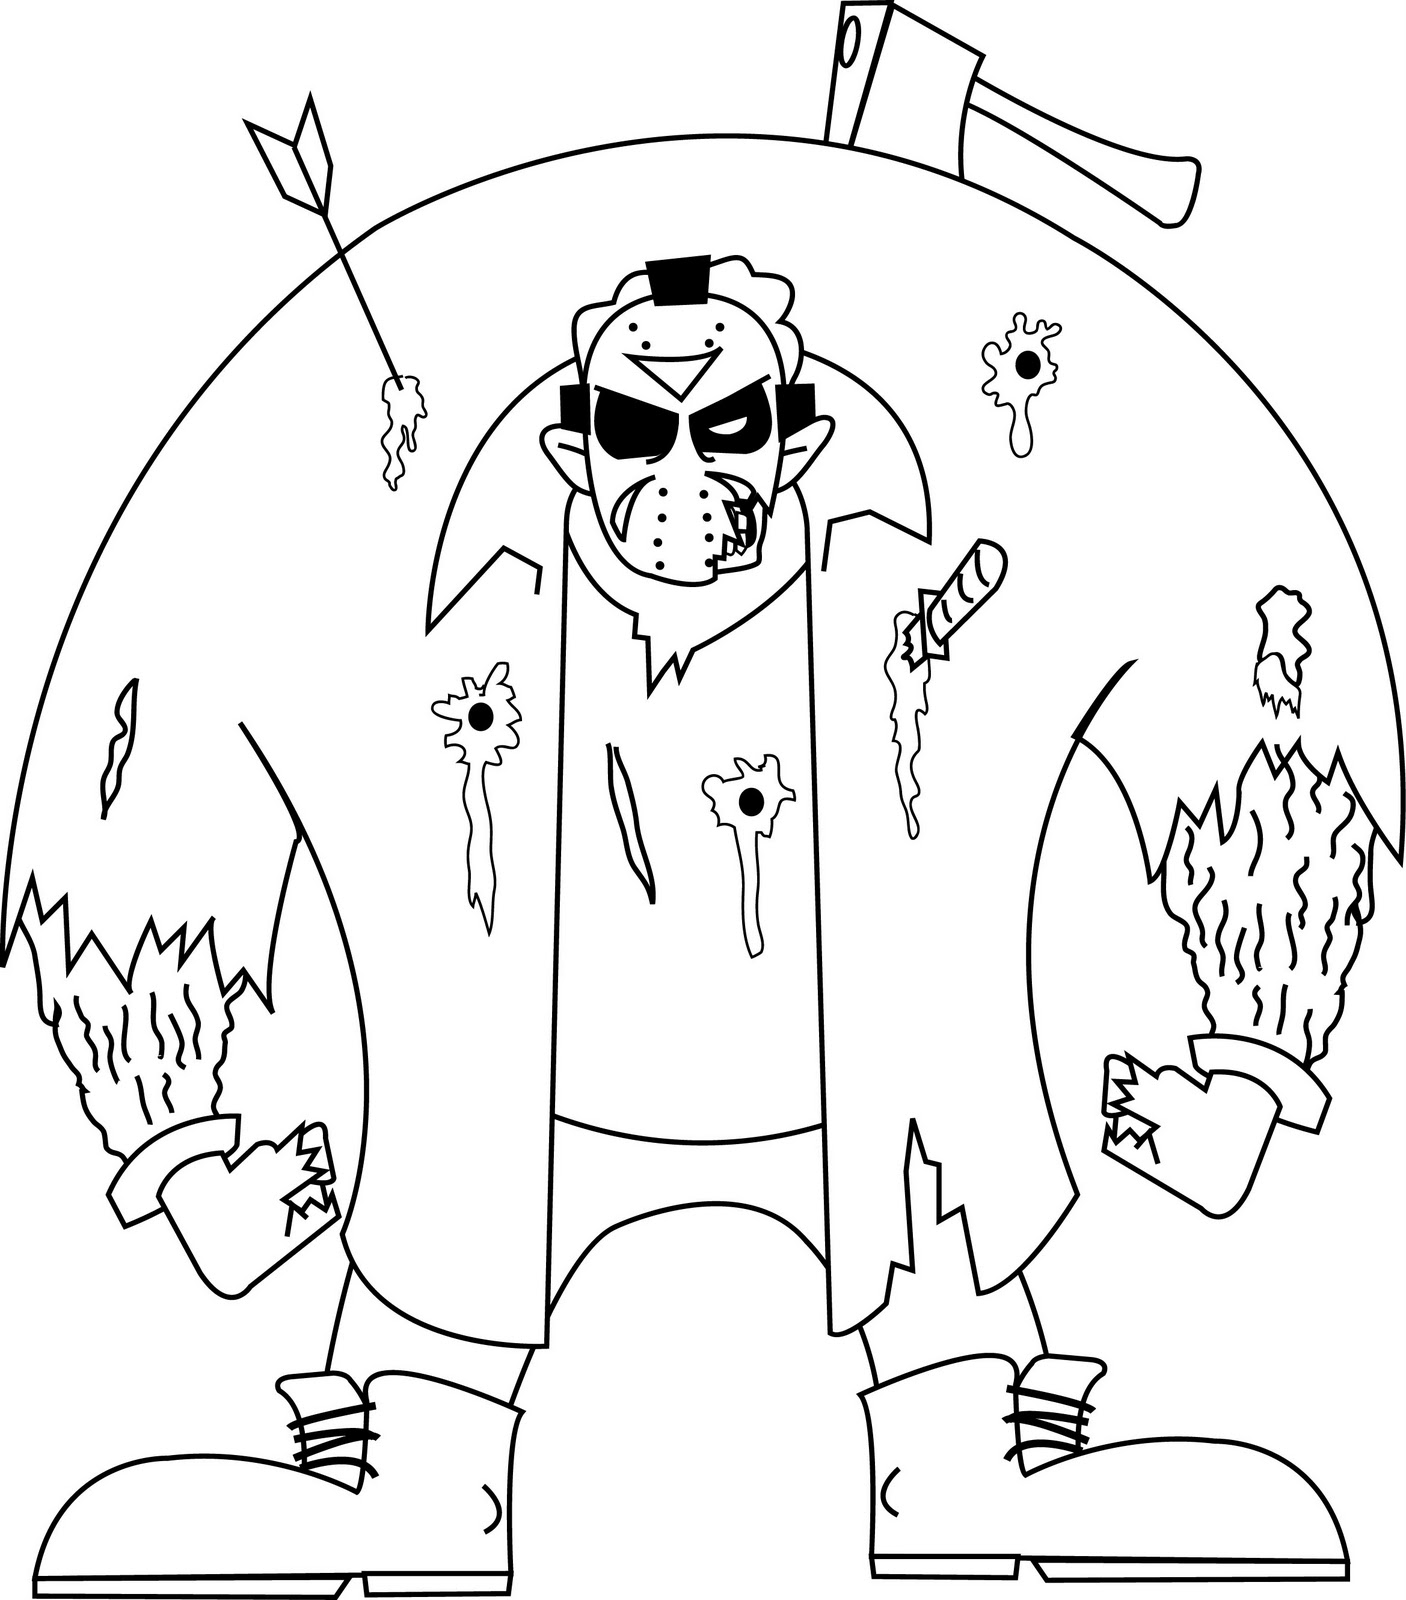 Chucky Coloring Pages To Color